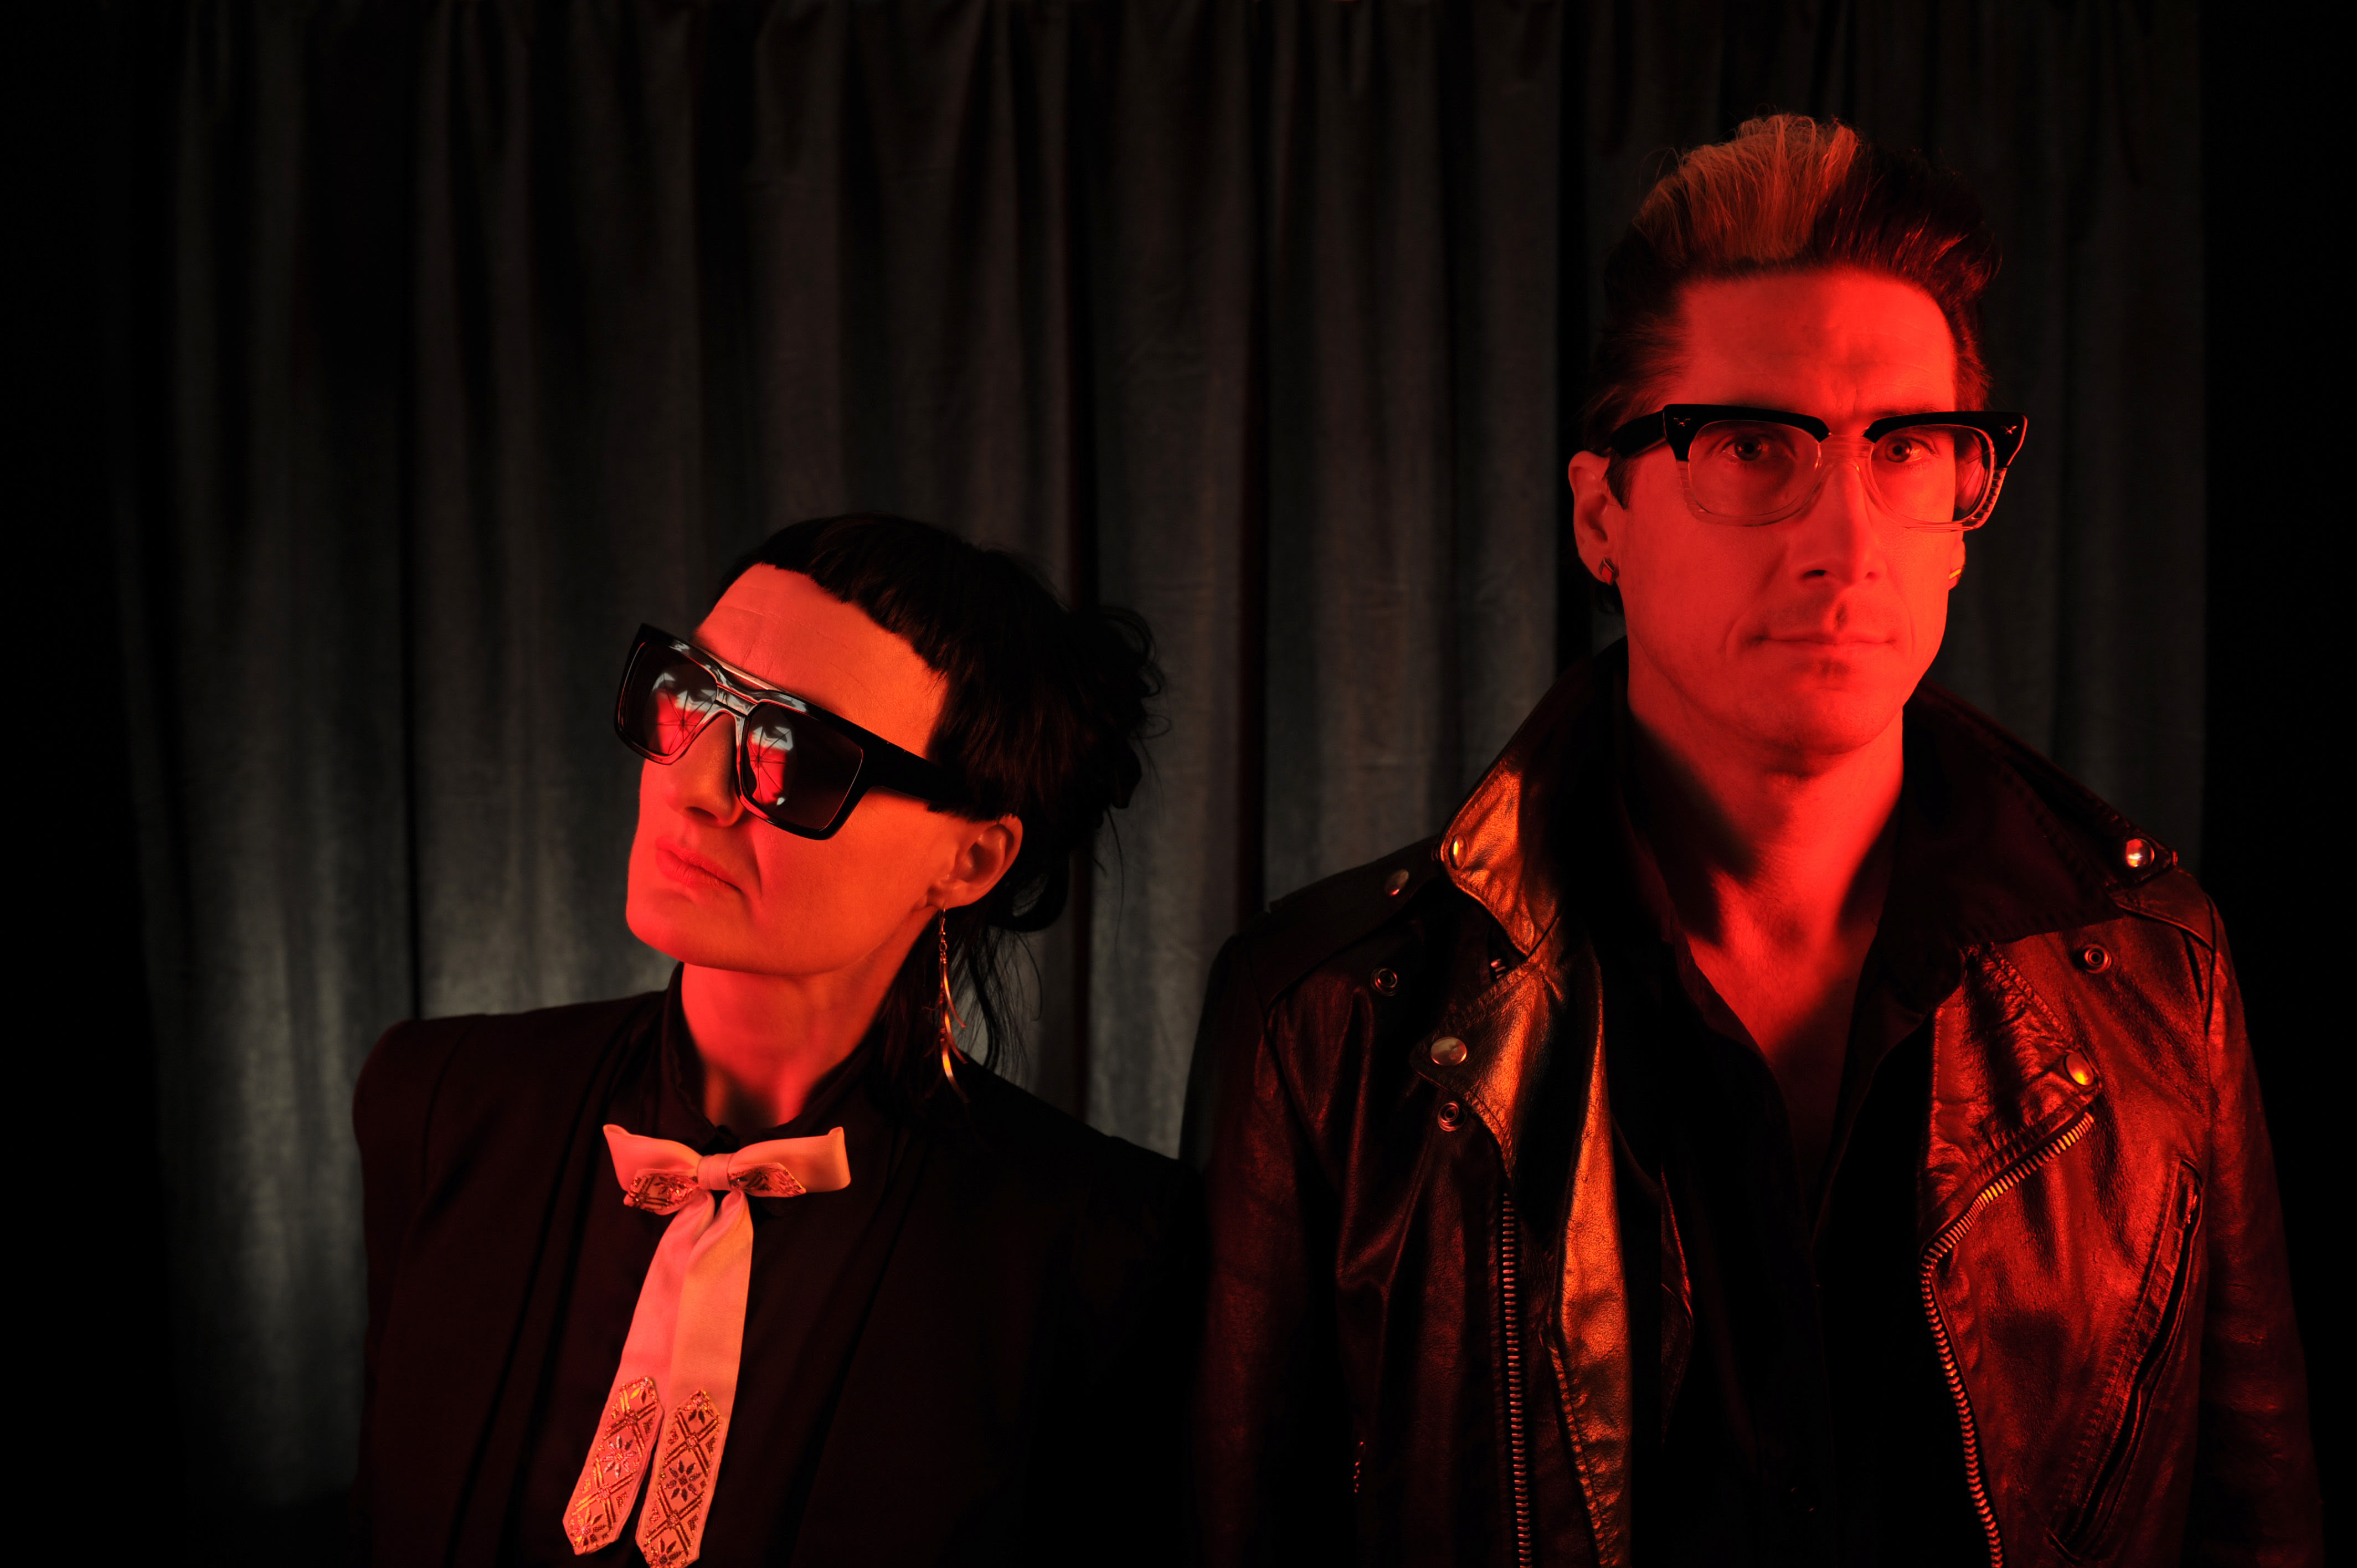 ADULT. Reveals Video featuring Douglas J McCarthy from Nitzer Ebb